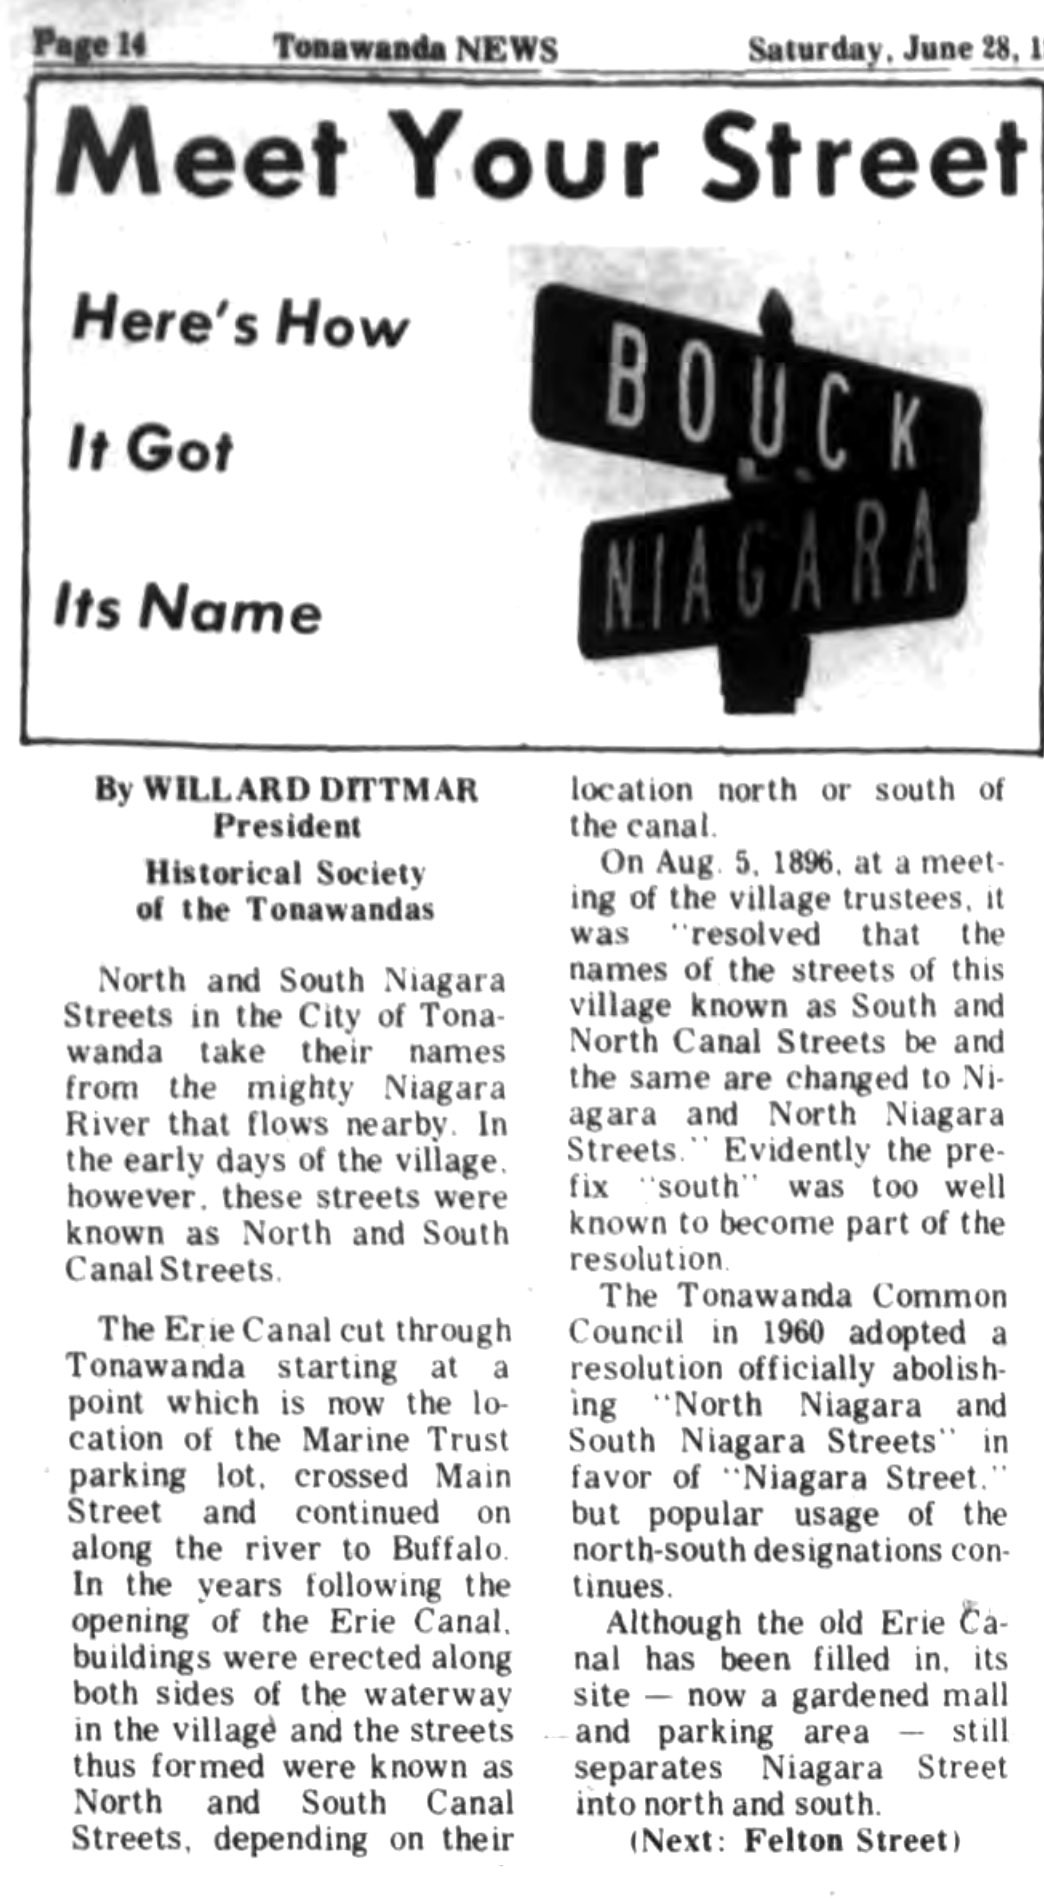 Meet Your Street - Niagara Street in Tonawanda (Tonawanada News, 1969-06-28).jpg